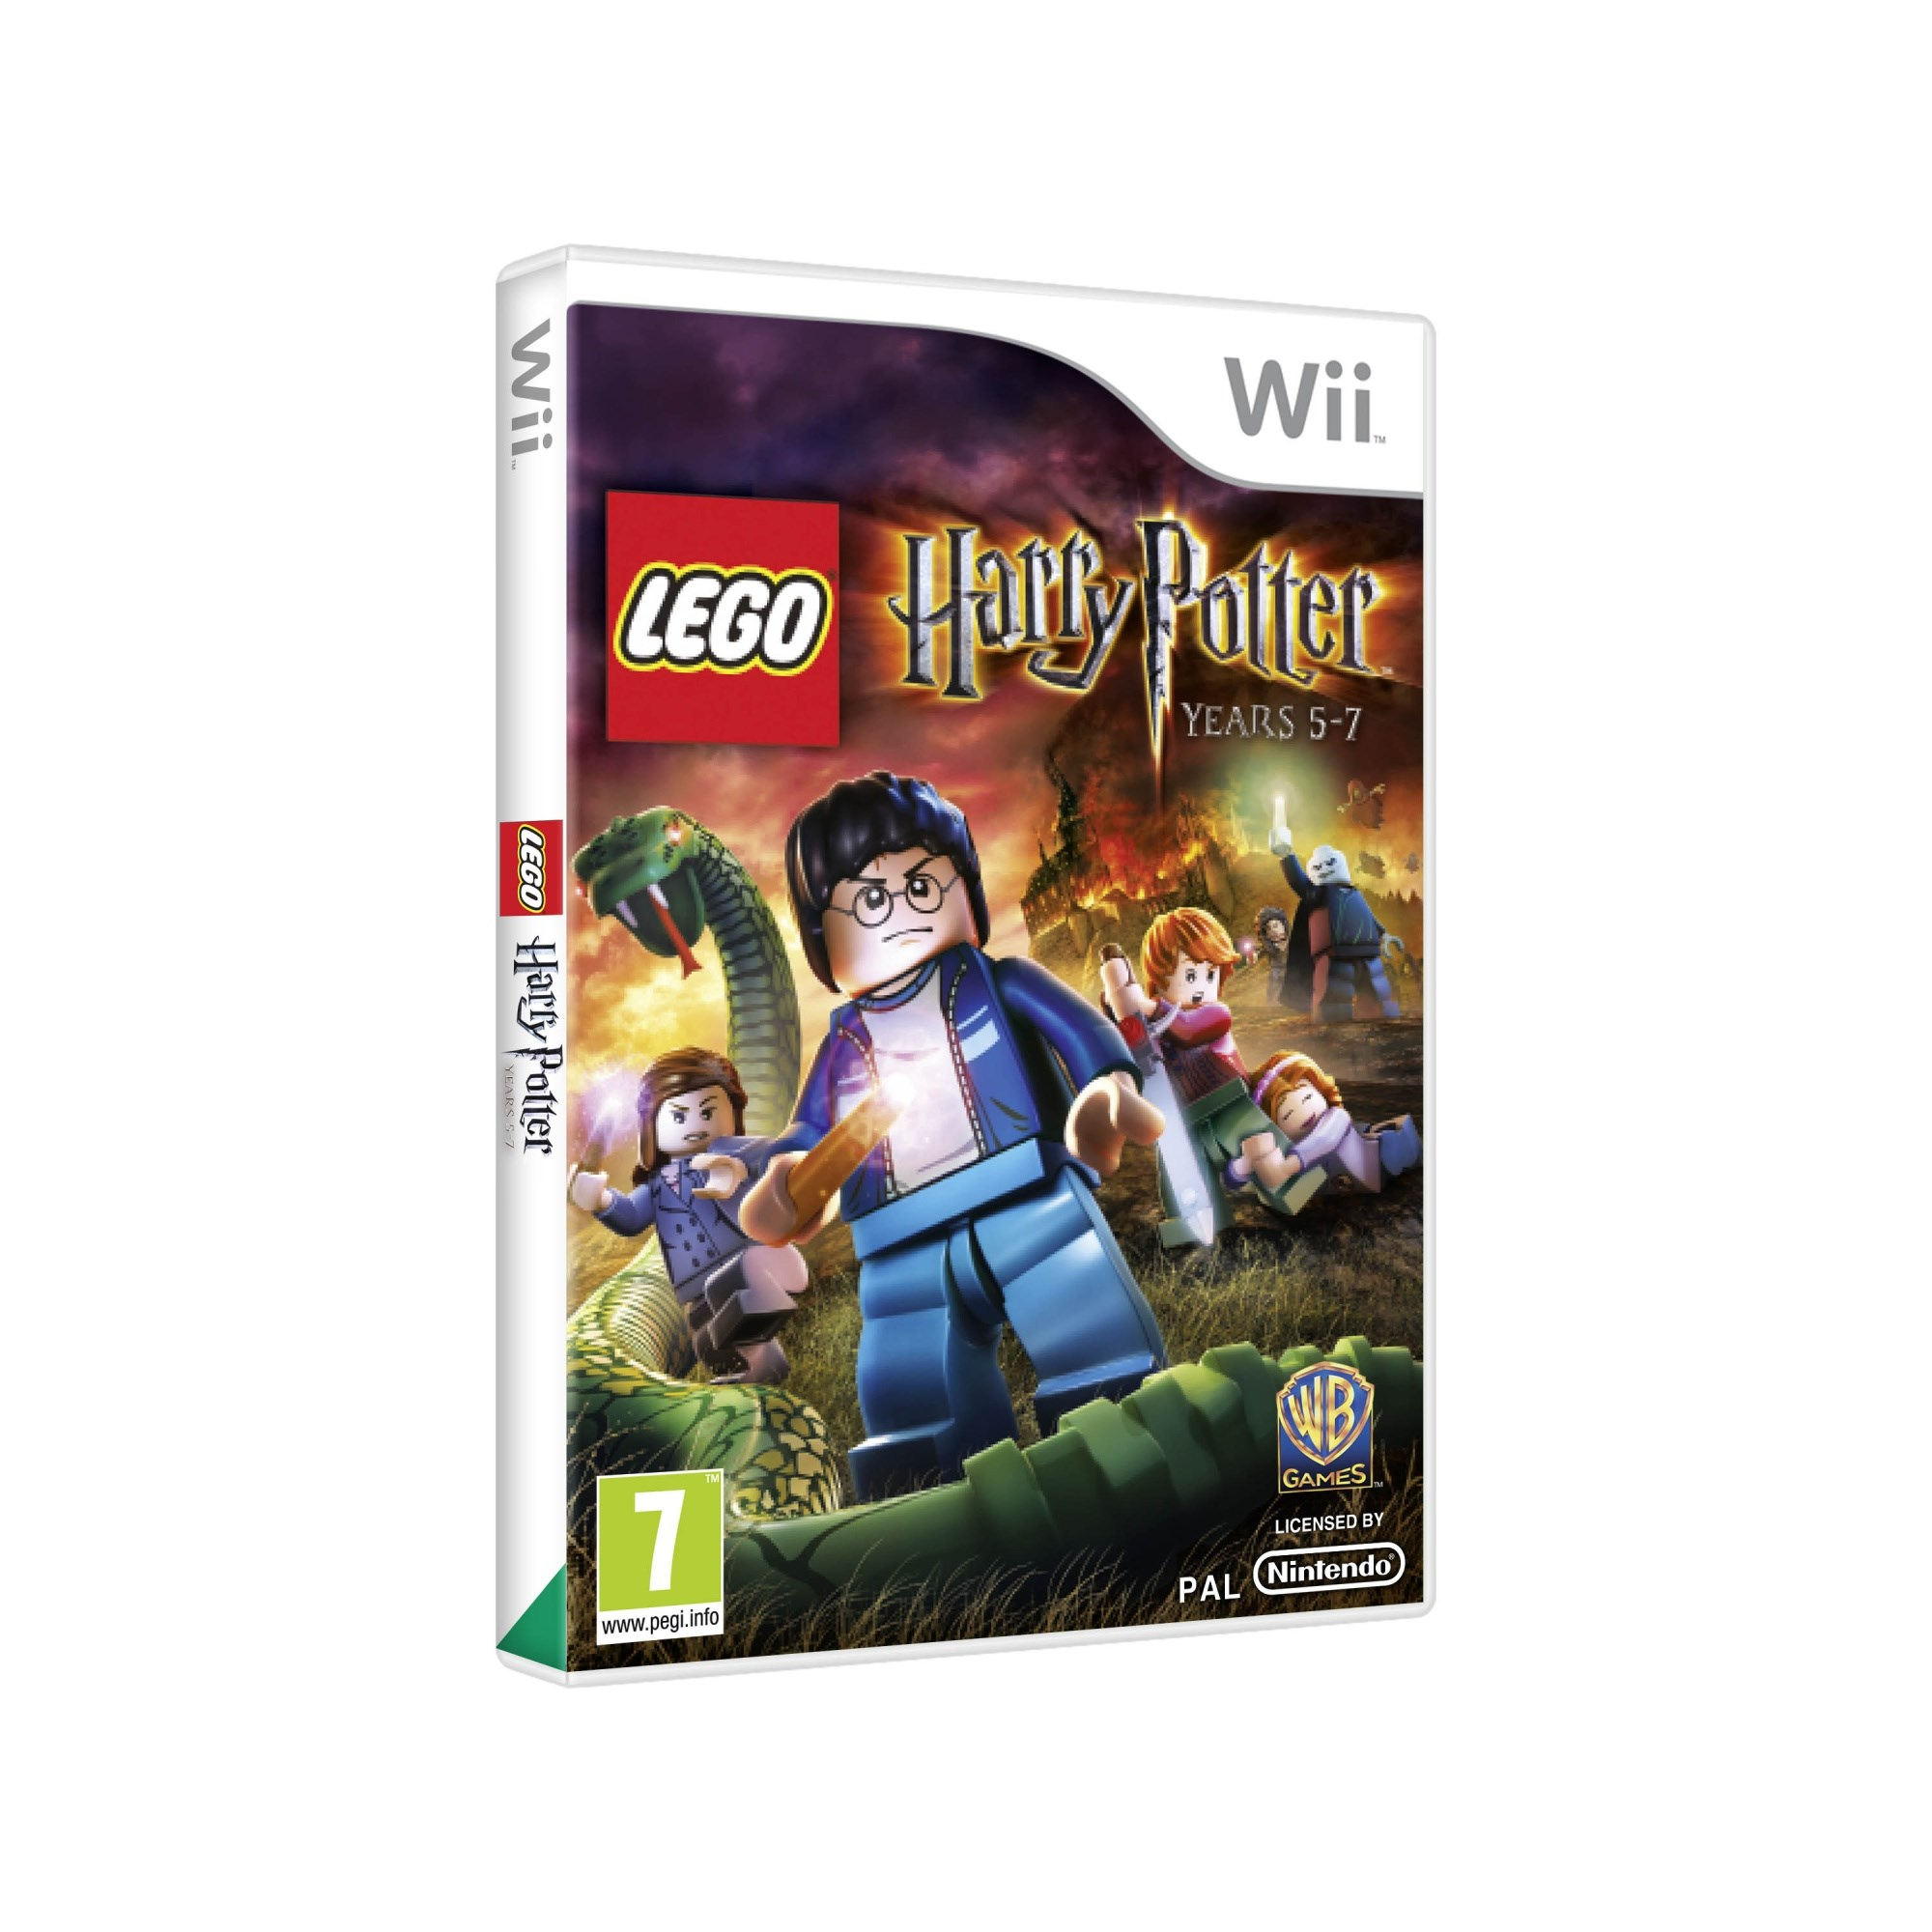 LEGO Harry Potter 2 Years 57 Wii